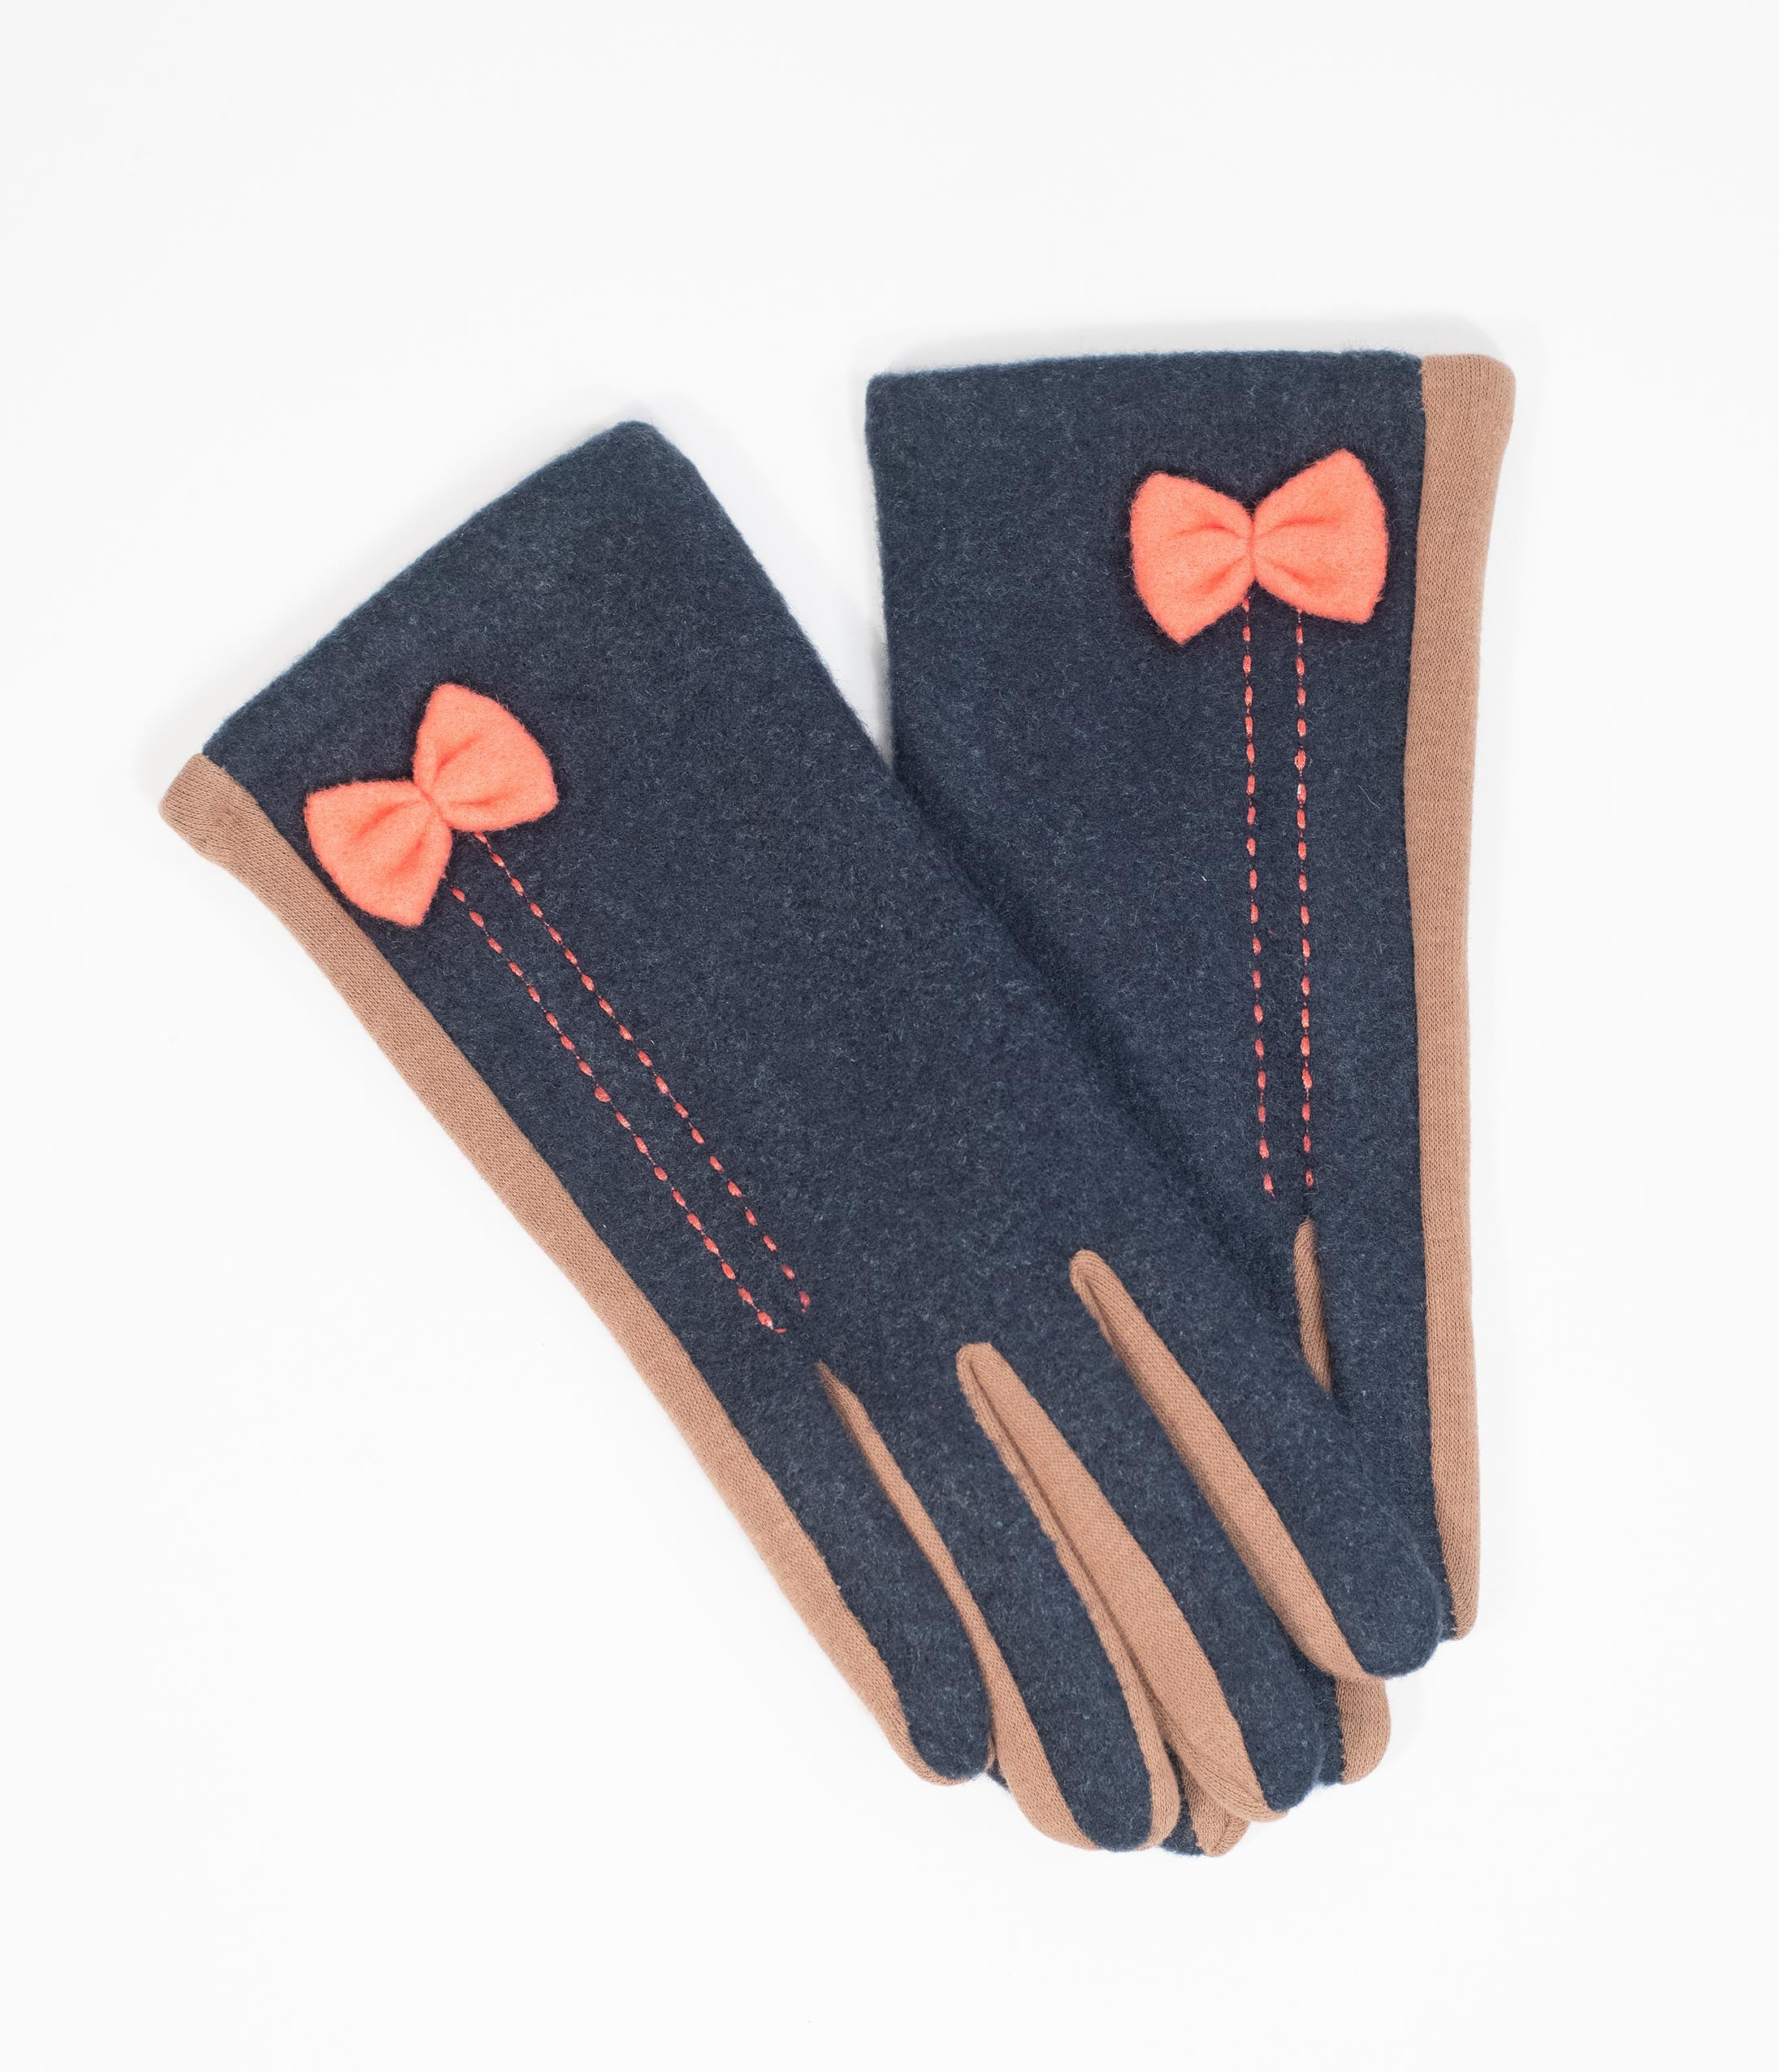 Vintage Style Gloves- Long, Wrist, Evening, Day, Leather, Lace Vintage Style Navy  Tan Bow Two Tone Gloves $24.00 AT vintagedancer.com